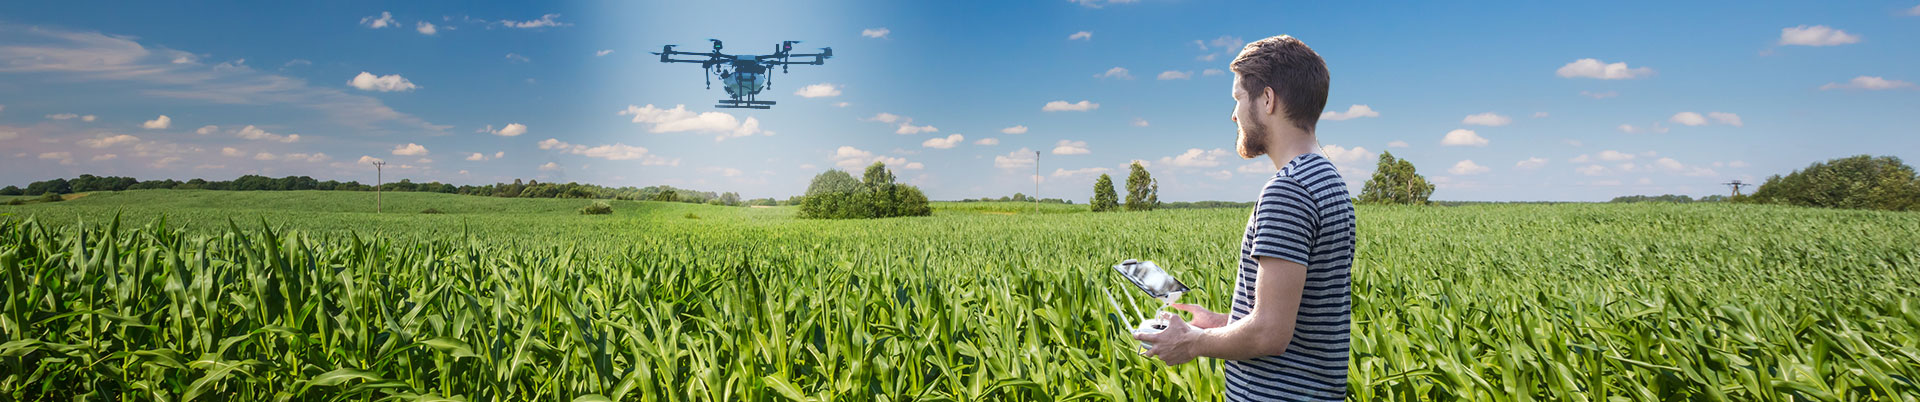 Agriculture Drone Software Development